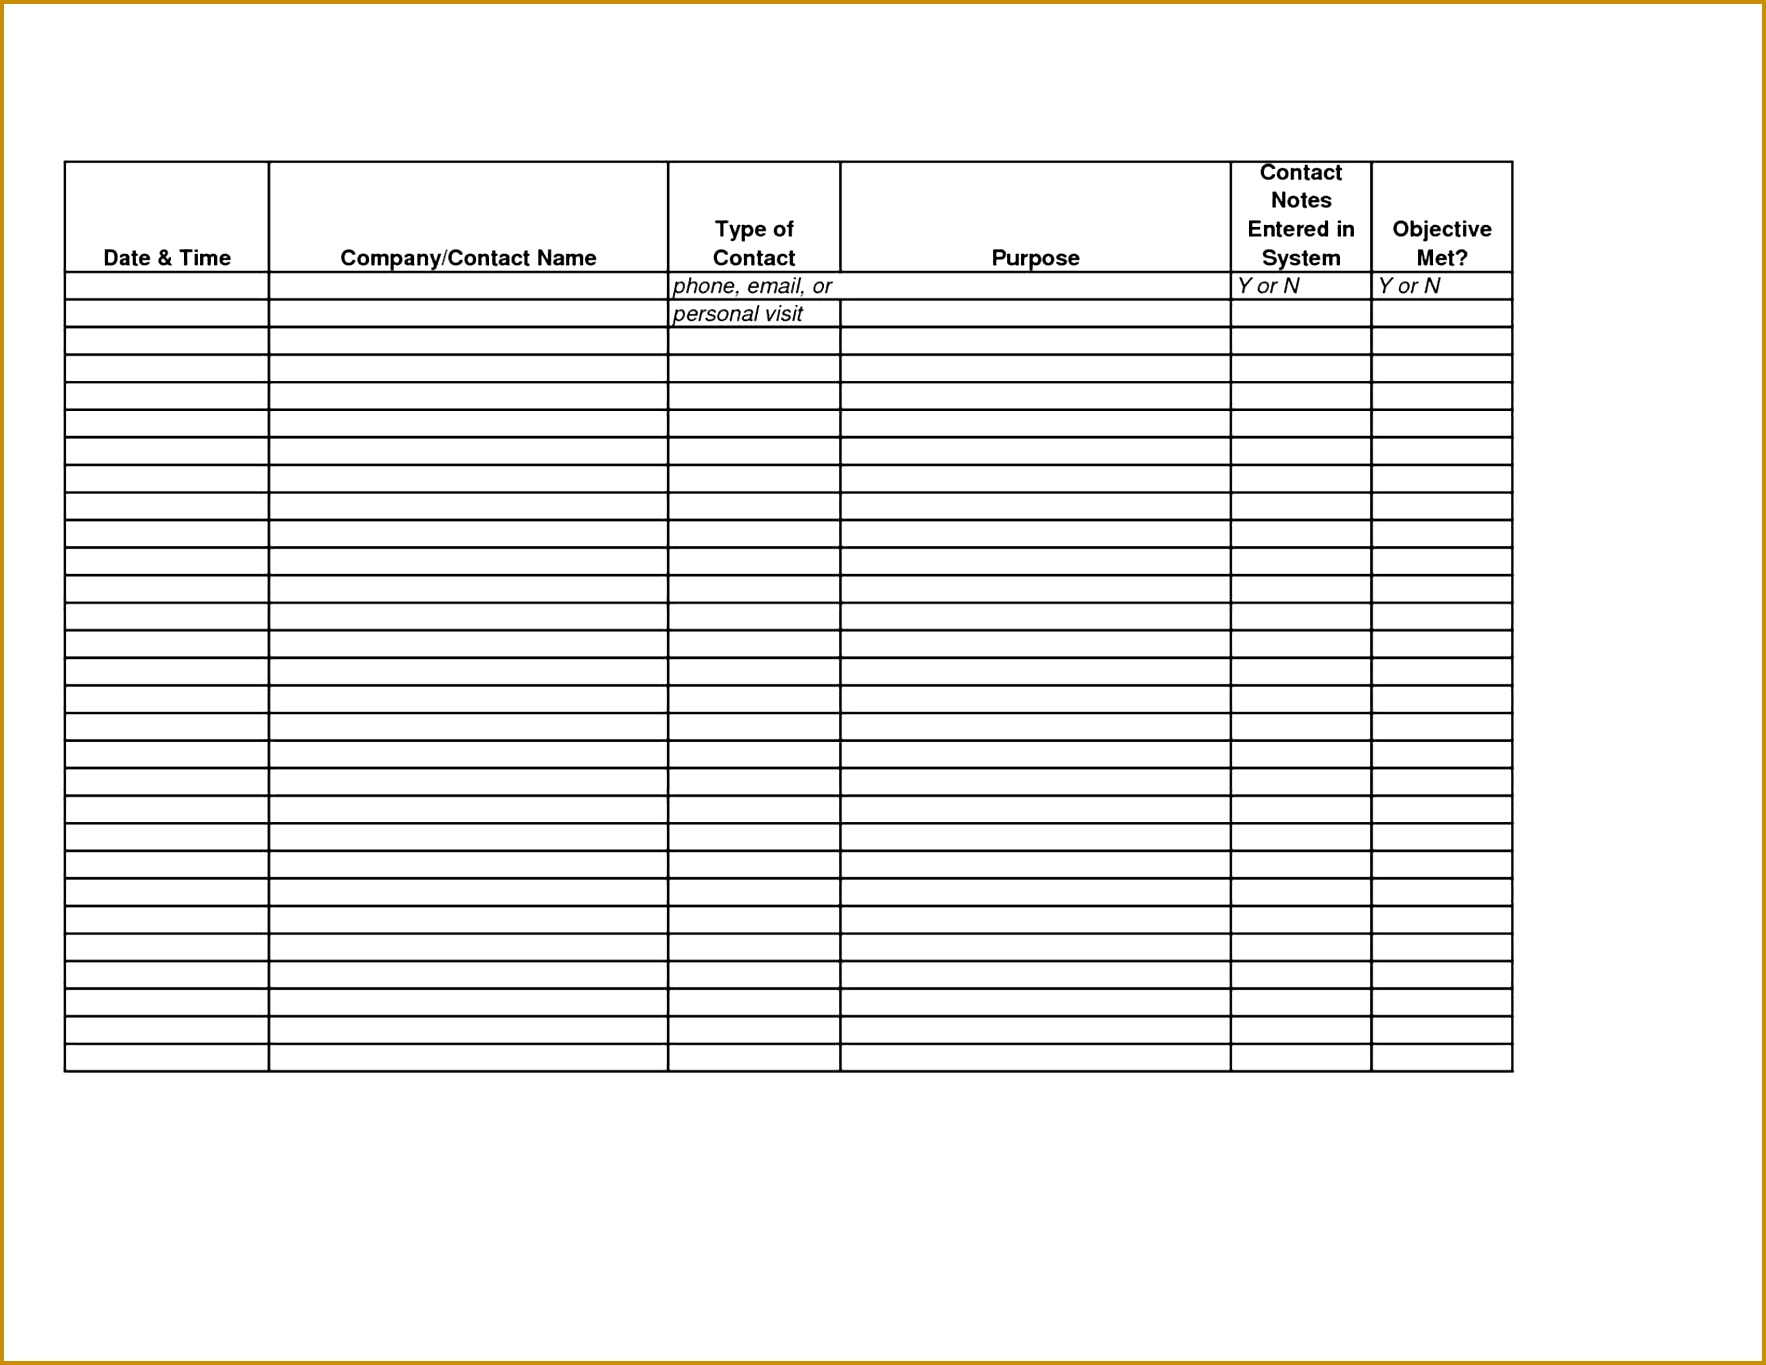 excel Time Study Template Excel timesheet template with formulas time spreadsheet employee tracking employee Time Study 13651766